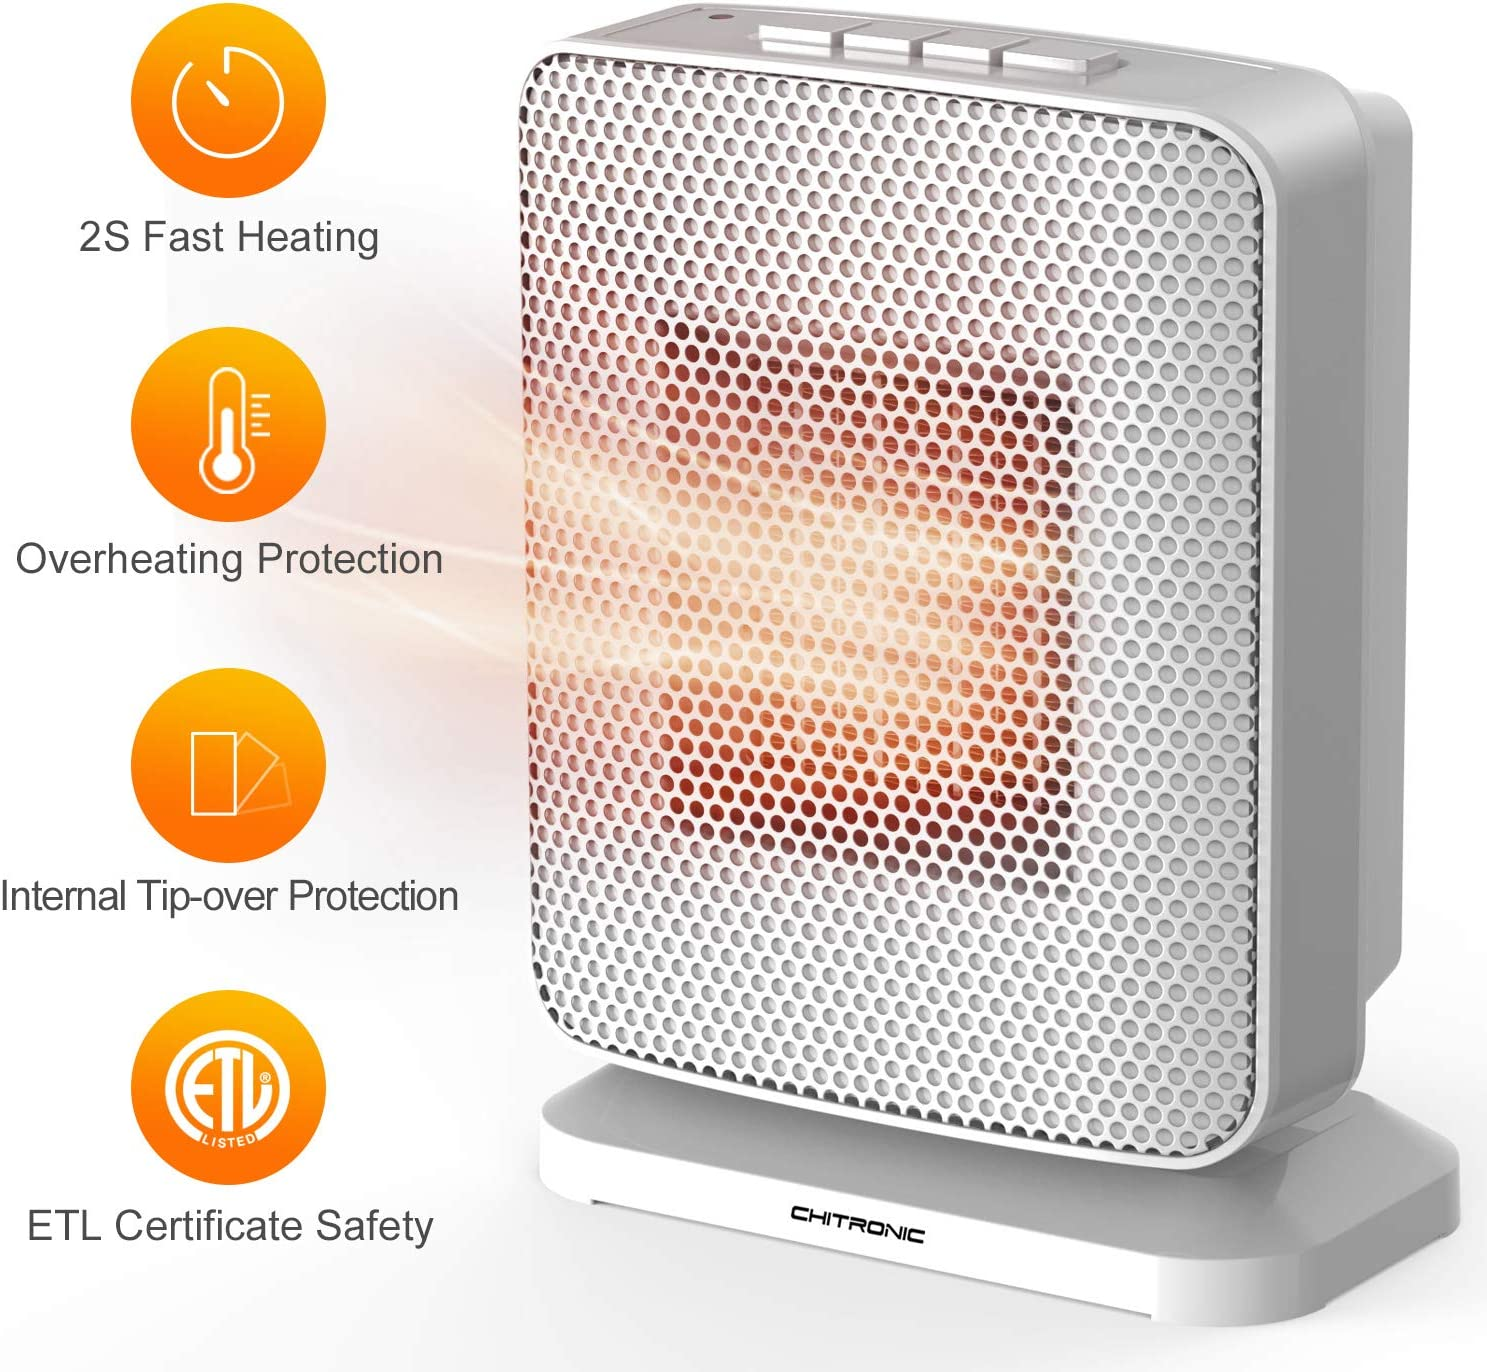 CHITRONIC Portable Ceramic Space Heater with Efficient 1500 Watt, Oscillating Function, Overheating and Tip-Over Protection, Push Button Design, Cold & Heat Settings for Home and Office (ETL Listed)